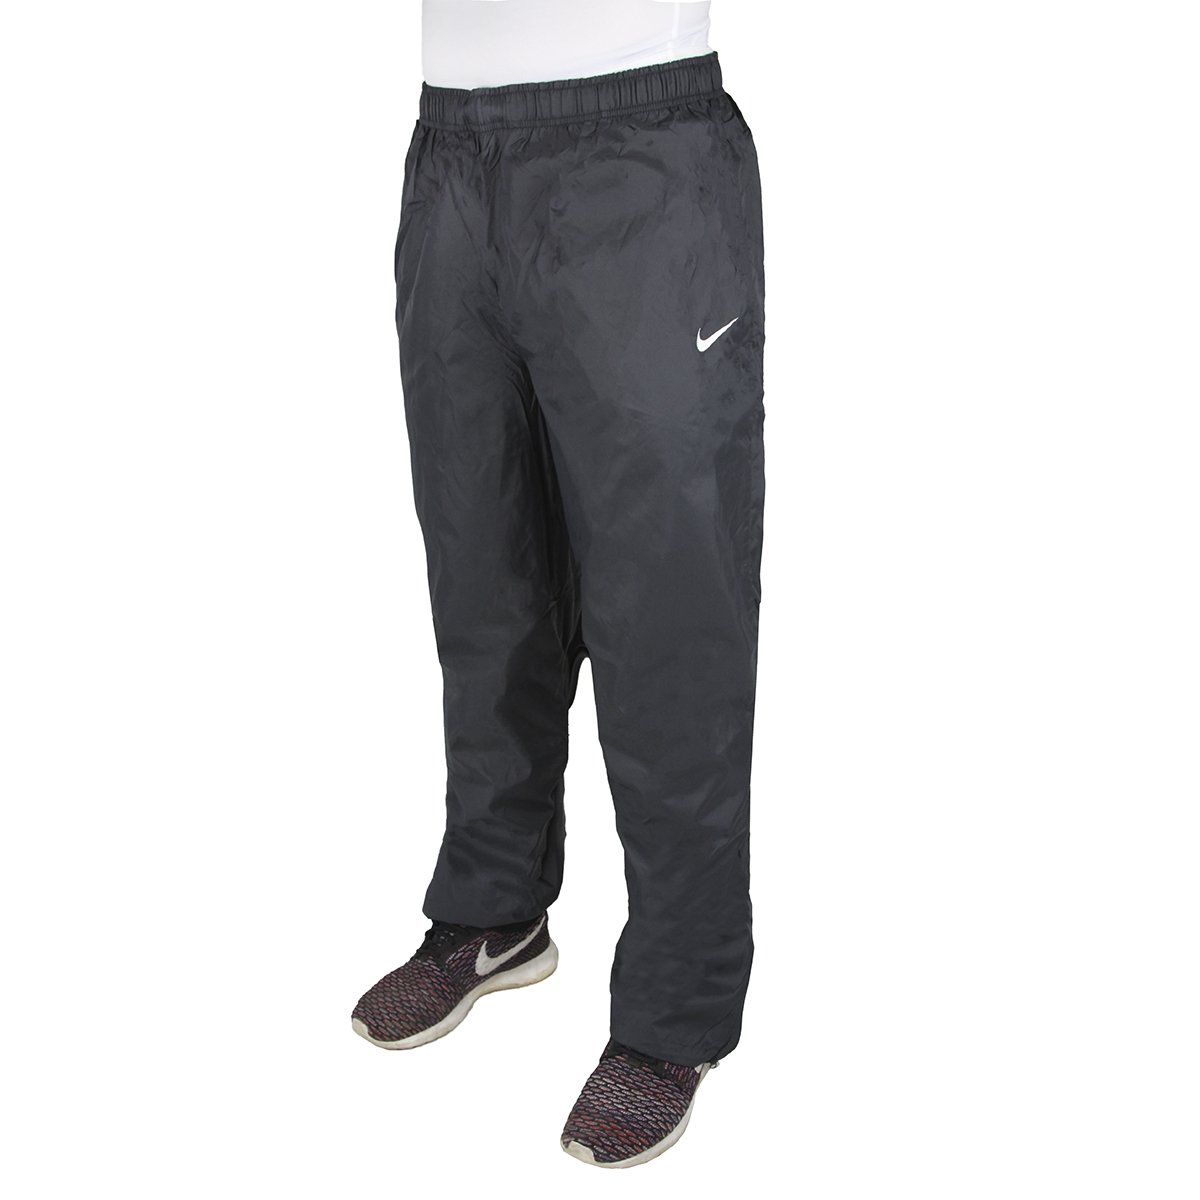 NIKE Men's Foundation 12 US Rain Pants Anthracite 2XL